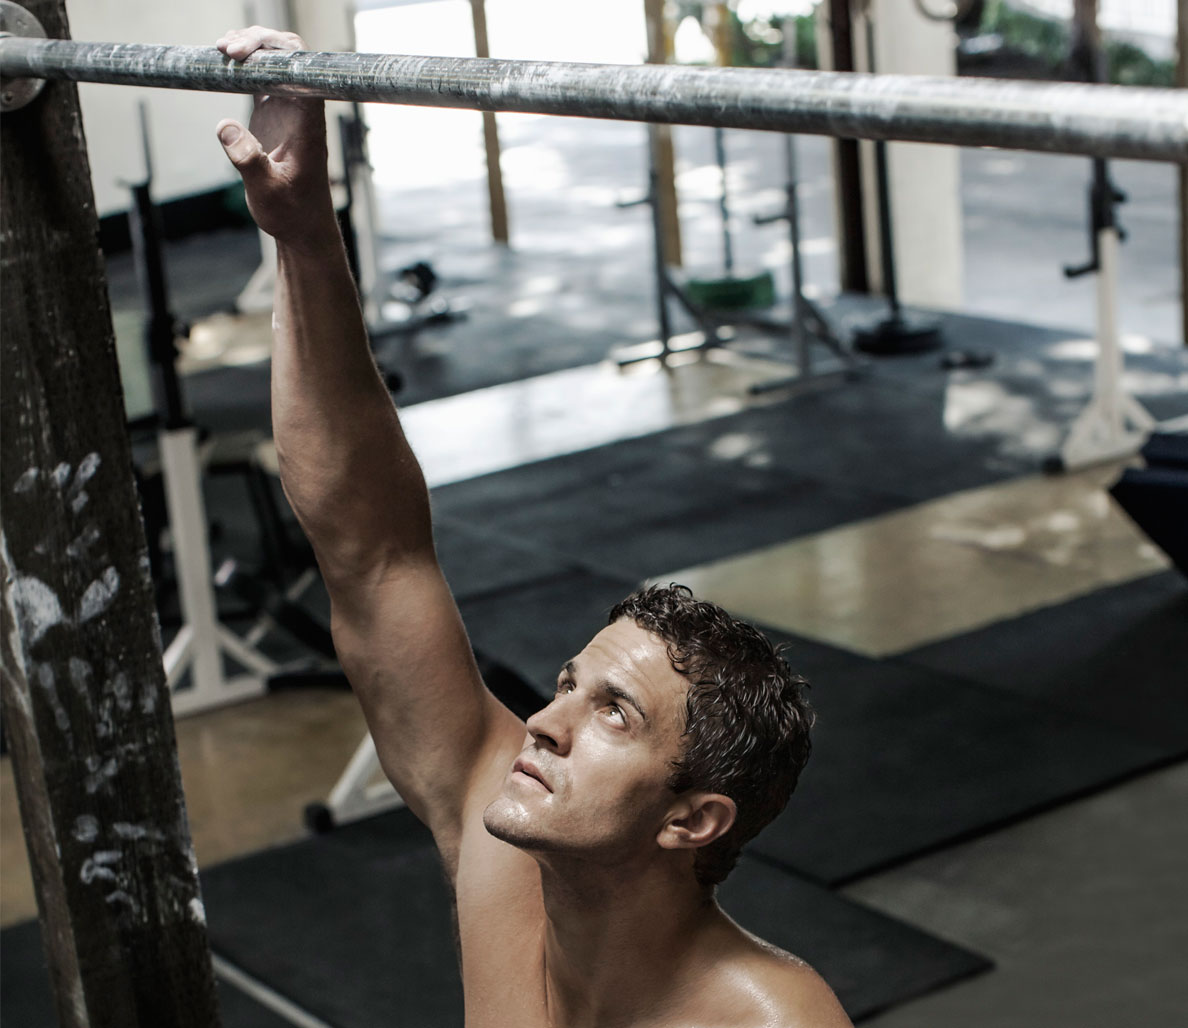 25 Ways To Get Bigger Circuit Workouts Are A Great Technique Keep Things Interesting And 5 Work Your Back